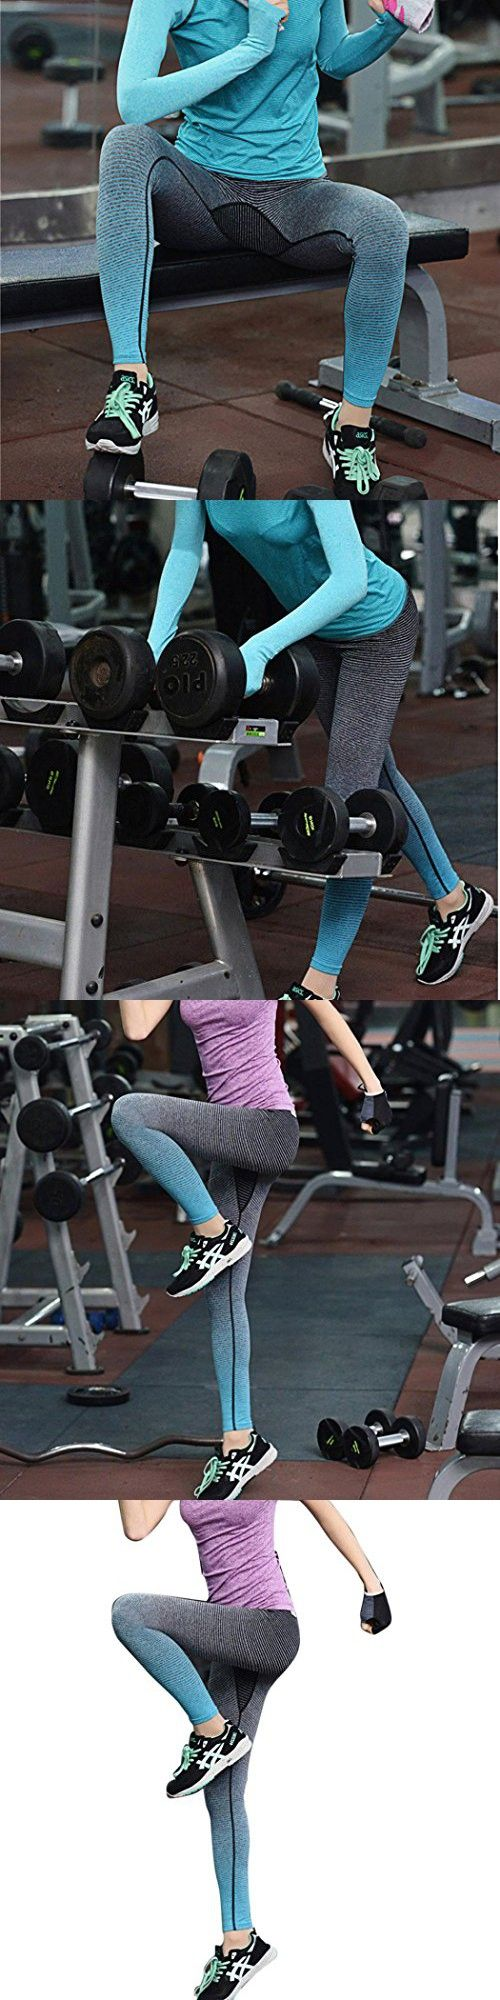 Hot Sale! Women Sport Leggings,Canserin Women's Running Yoga Stretch Pants Sports Fitness Gym Trousers Exercise Leggings (M, Blue)